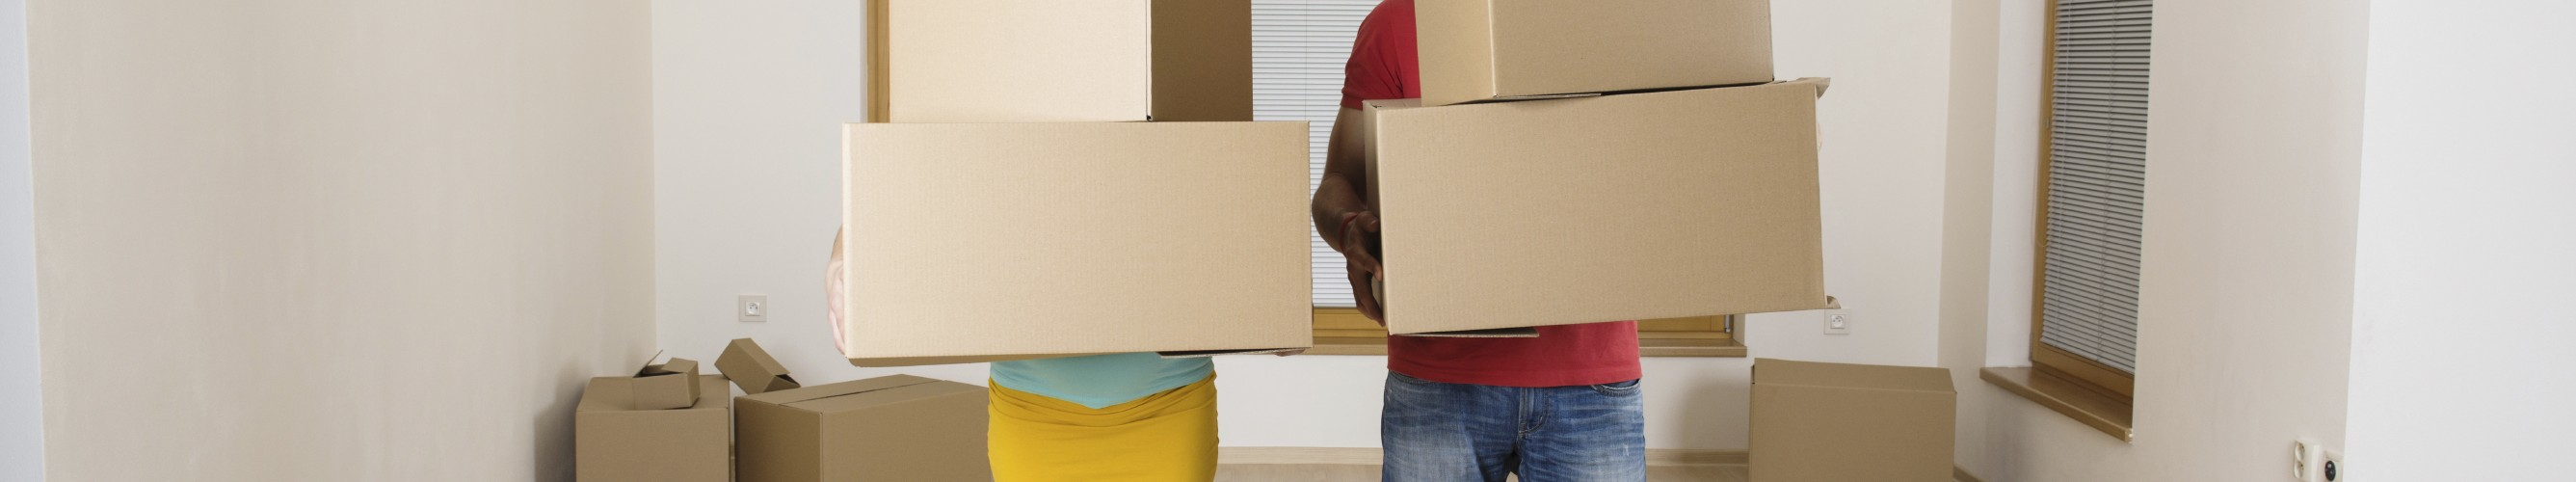 moving and downsizing